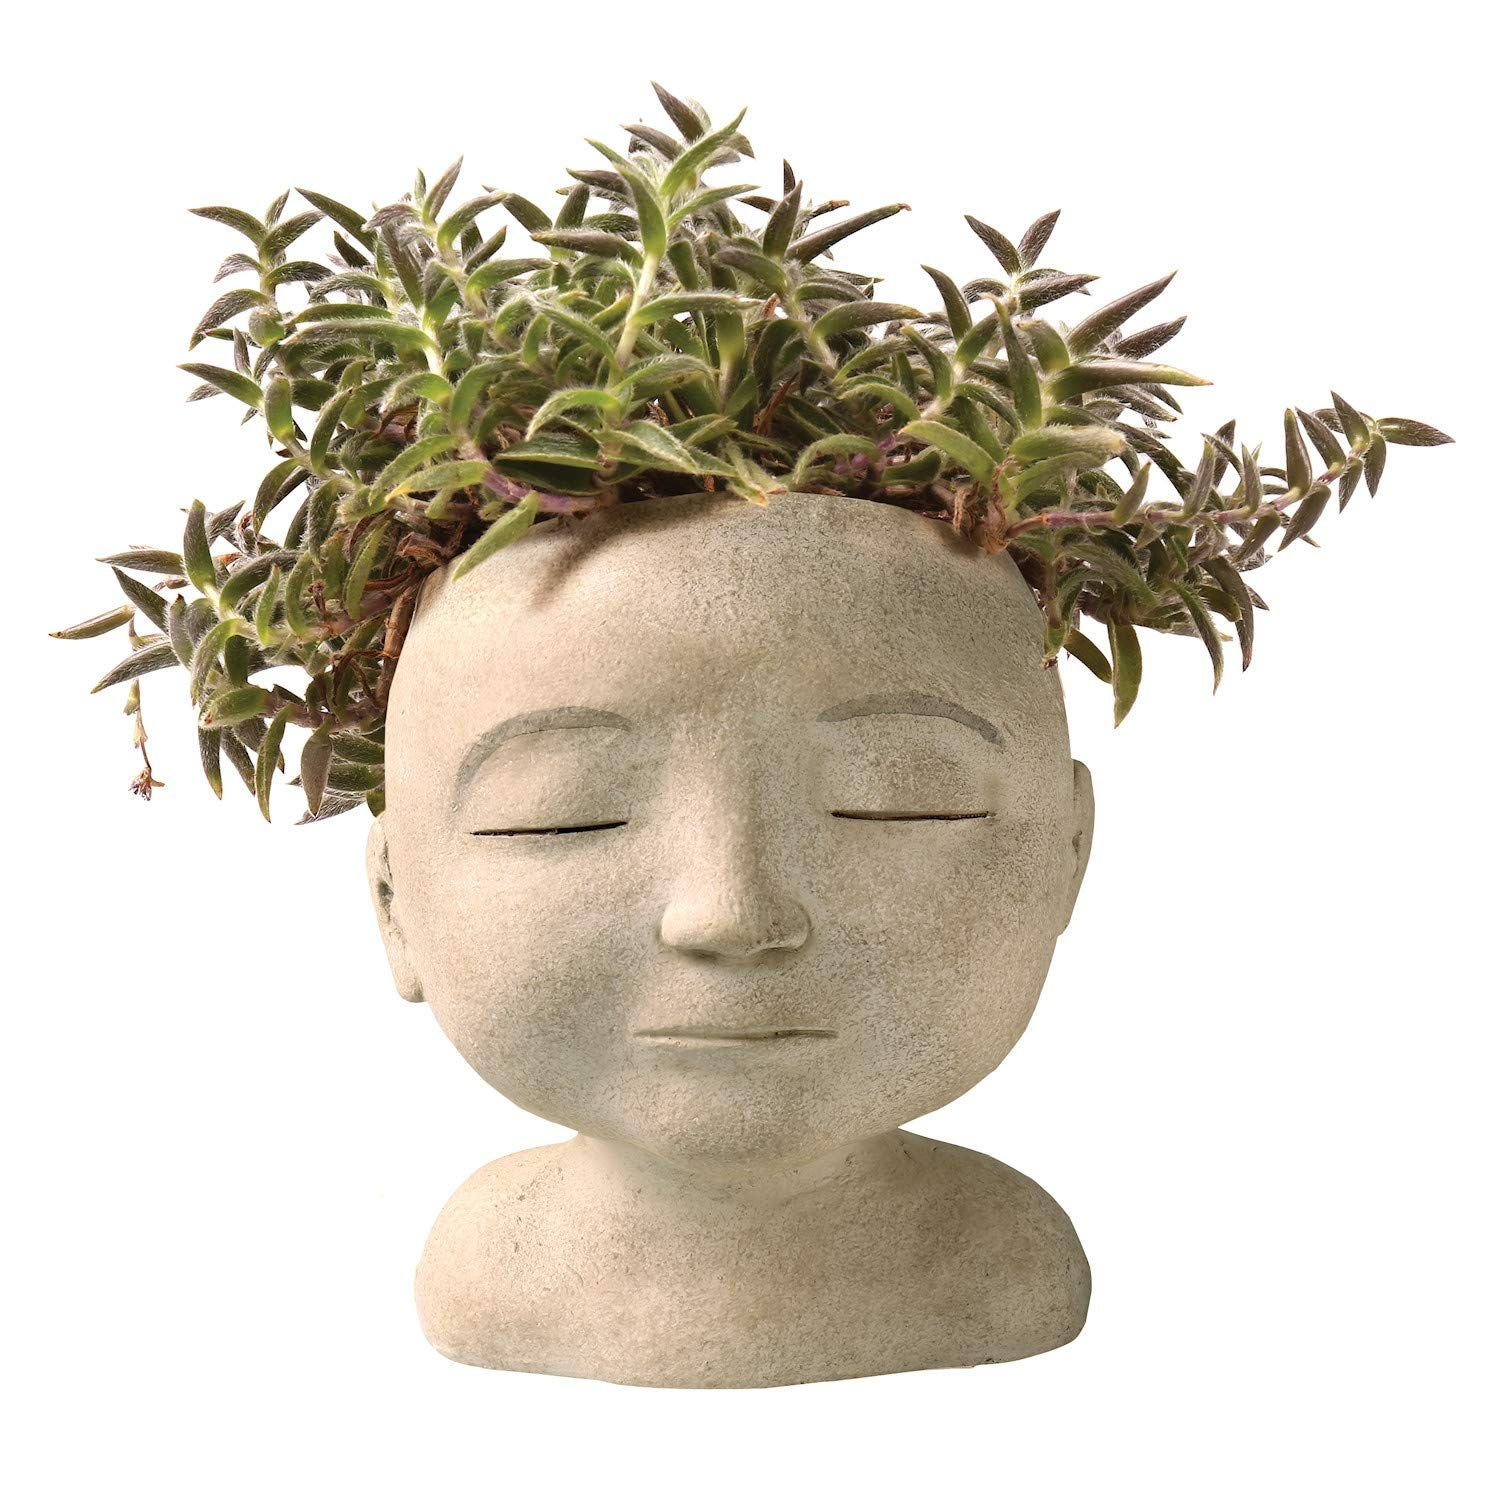 Trending: These Head Planters will add Personality